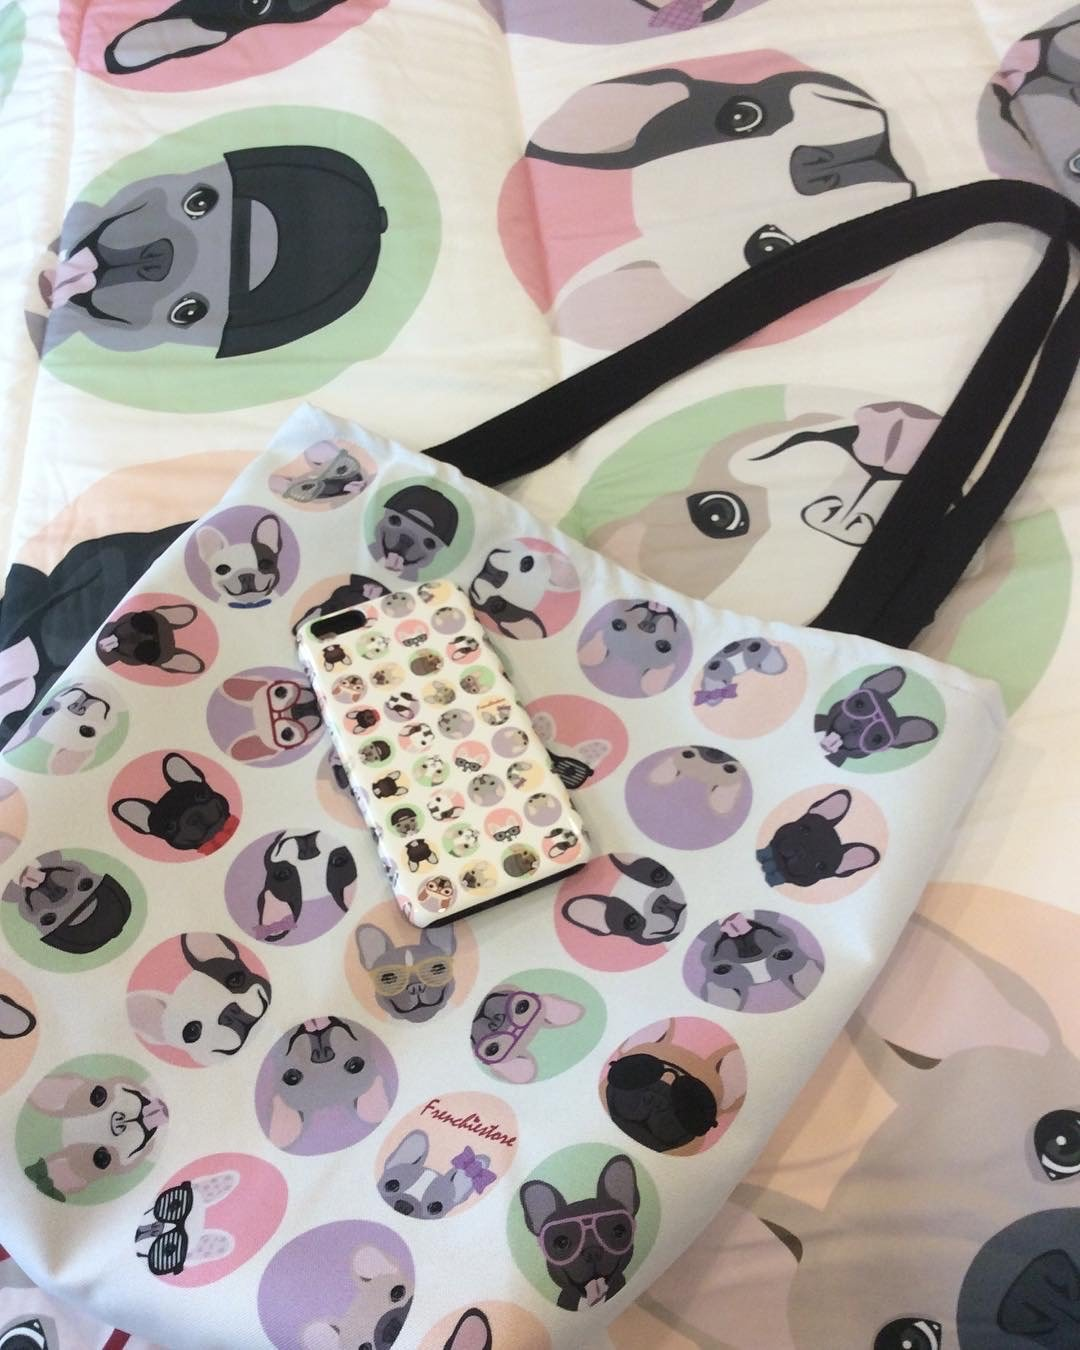 French Bulldogs on White Polka Dots | Frenchiestore Tote bag, Frenchie Dog, French Bulldog pet products